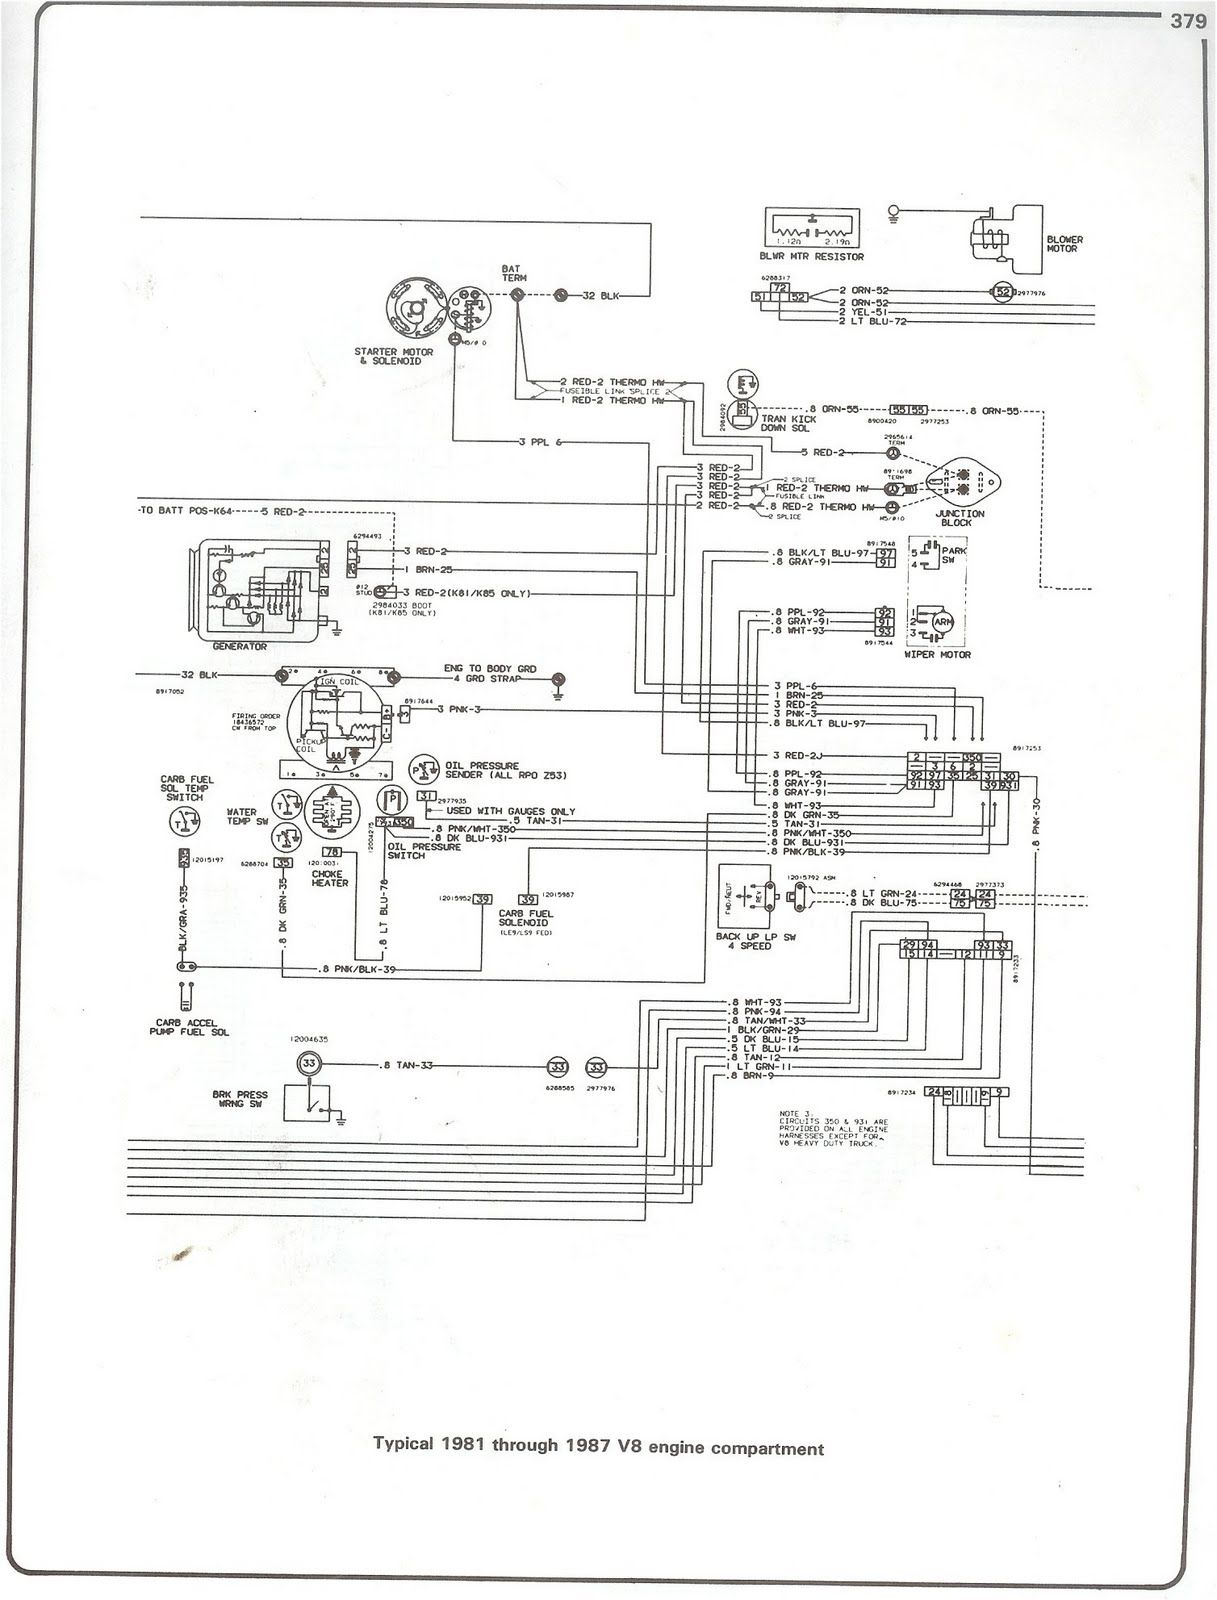 medium resolution of engine wiring diagram 1986 k 5 wiring diagram centre1985 k 5 chevy blazer wiring diagram wiring